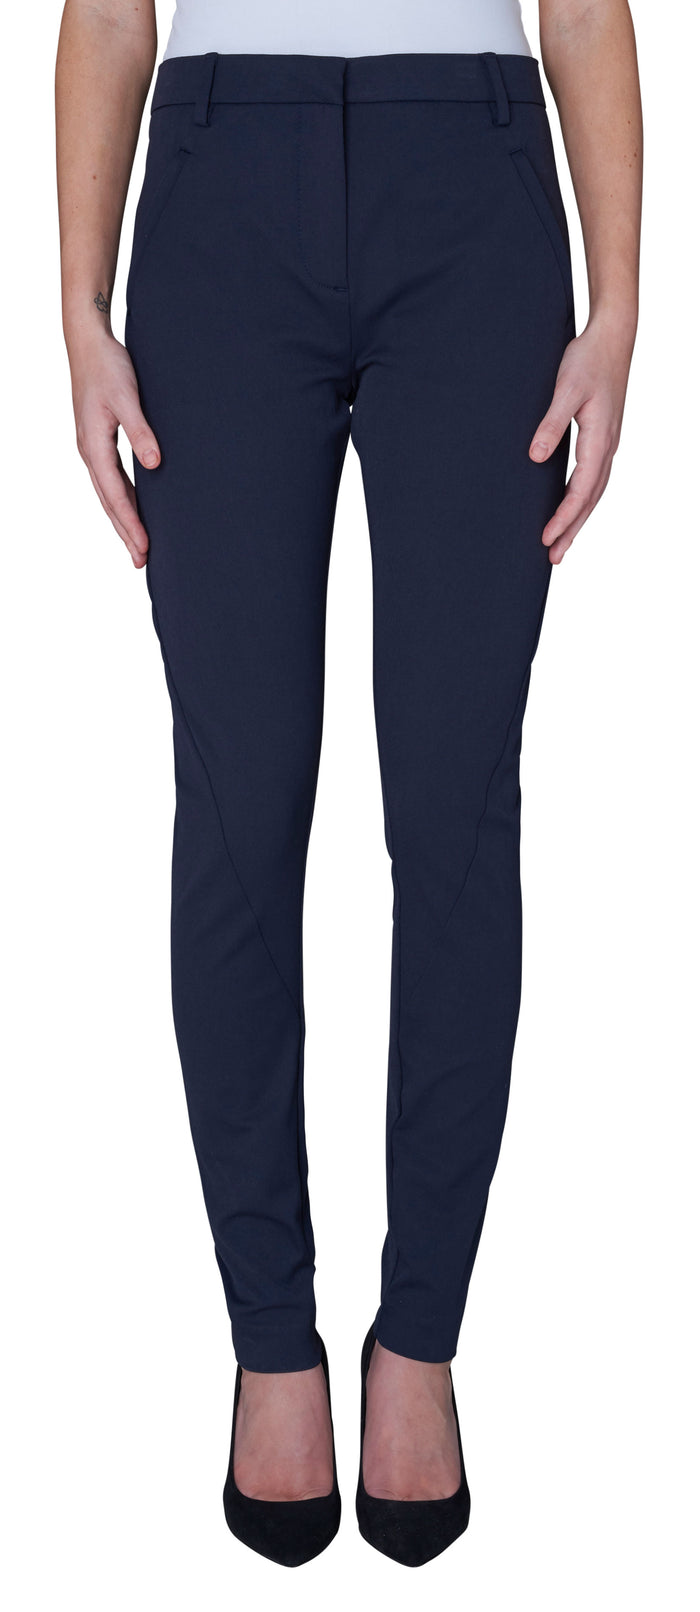 five units Angelie Dark Navy Pants